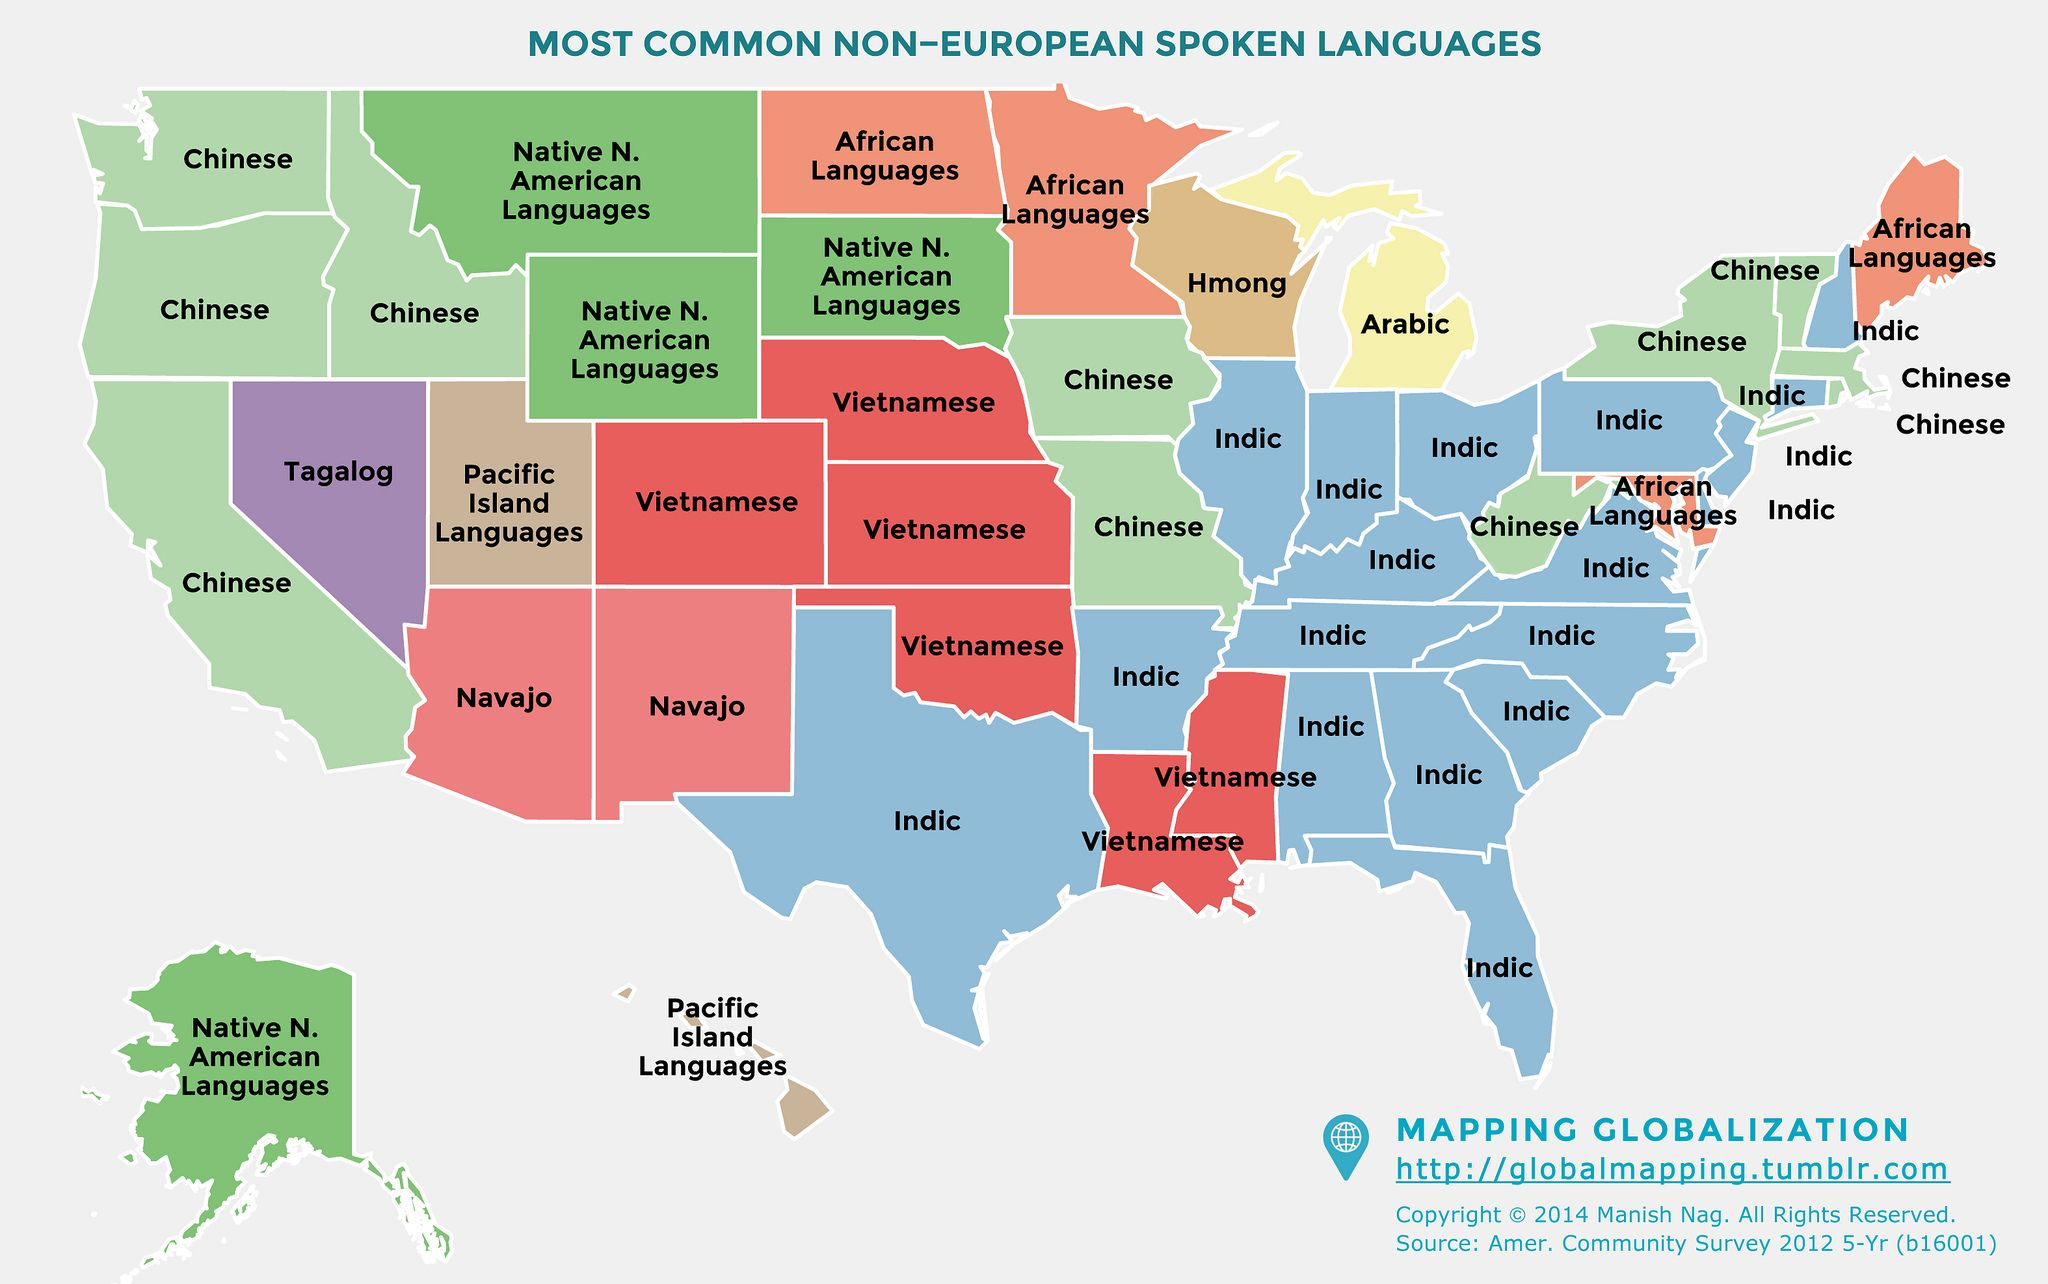 Most Common Non-European Languages spoken in the United States [2048 on